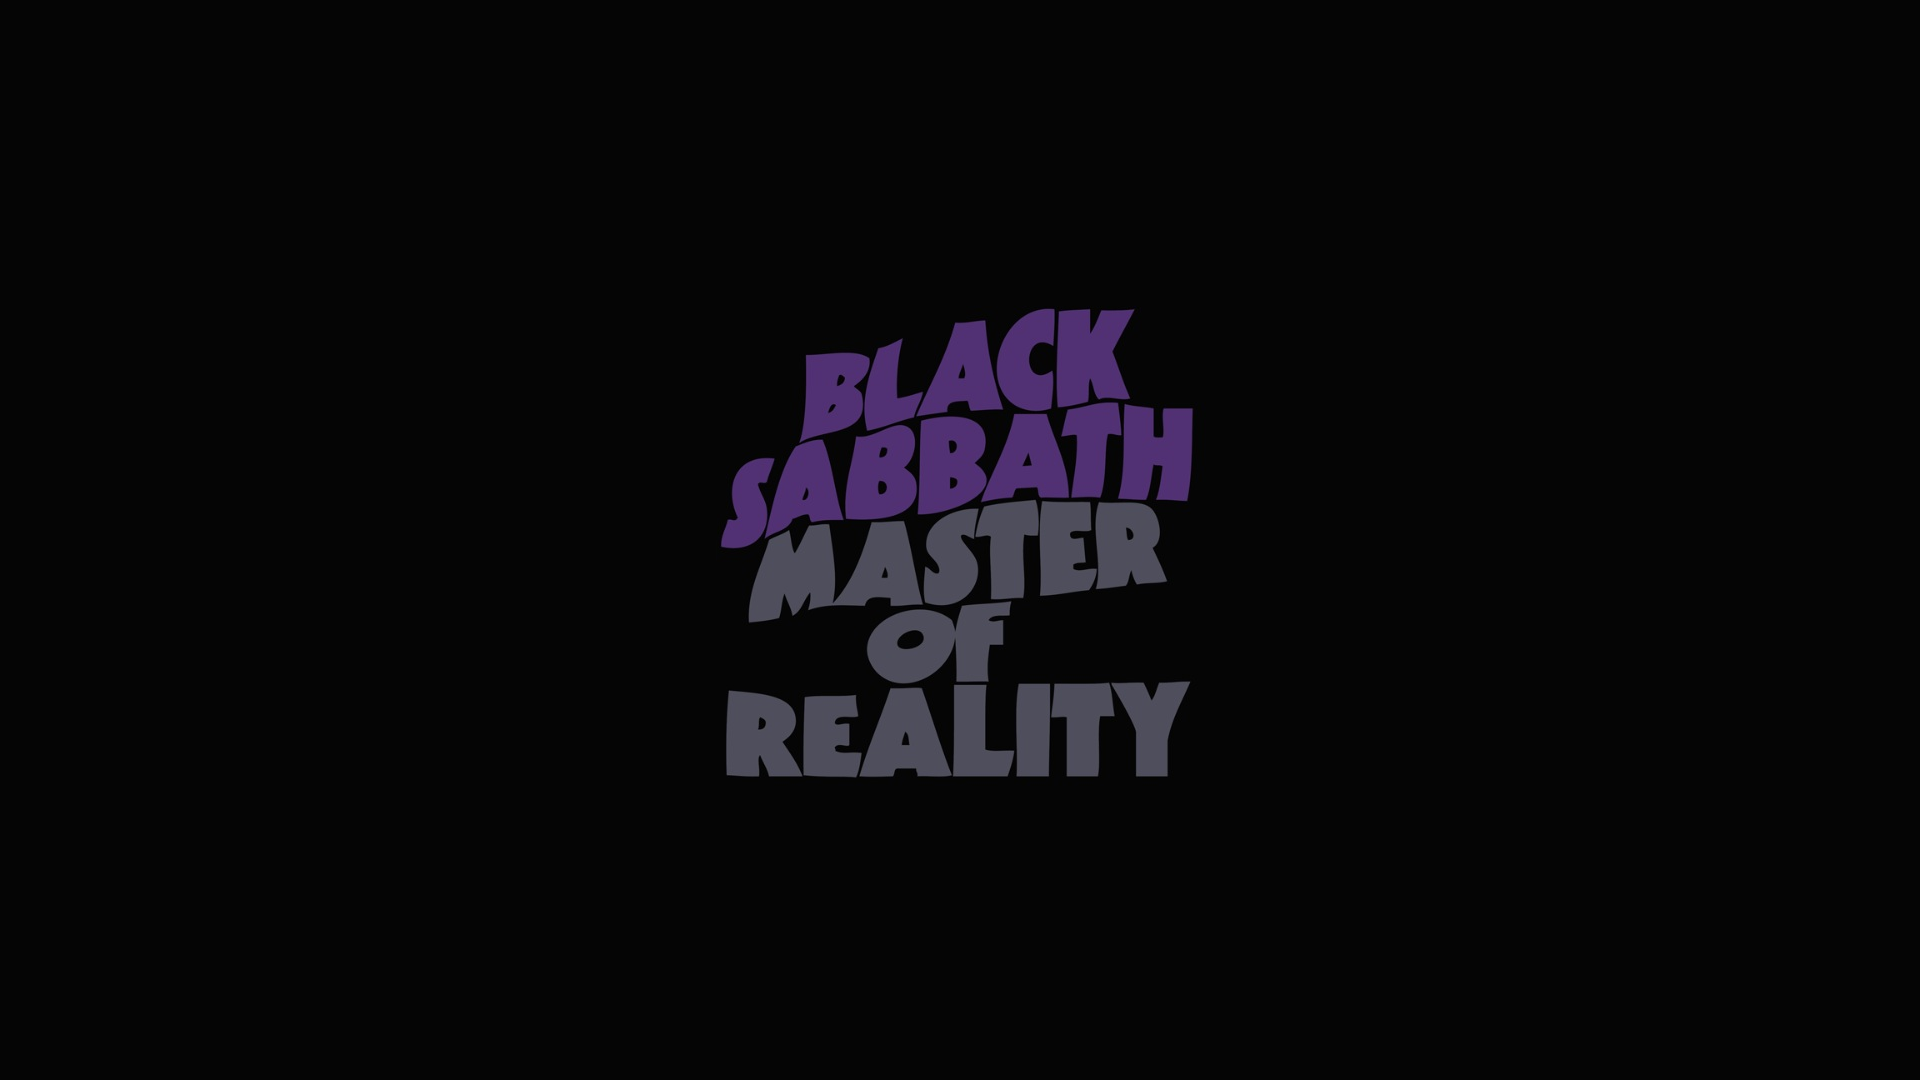 black sabbath vol 4 wallpaper for desktop master of reality wallpaper for computer background